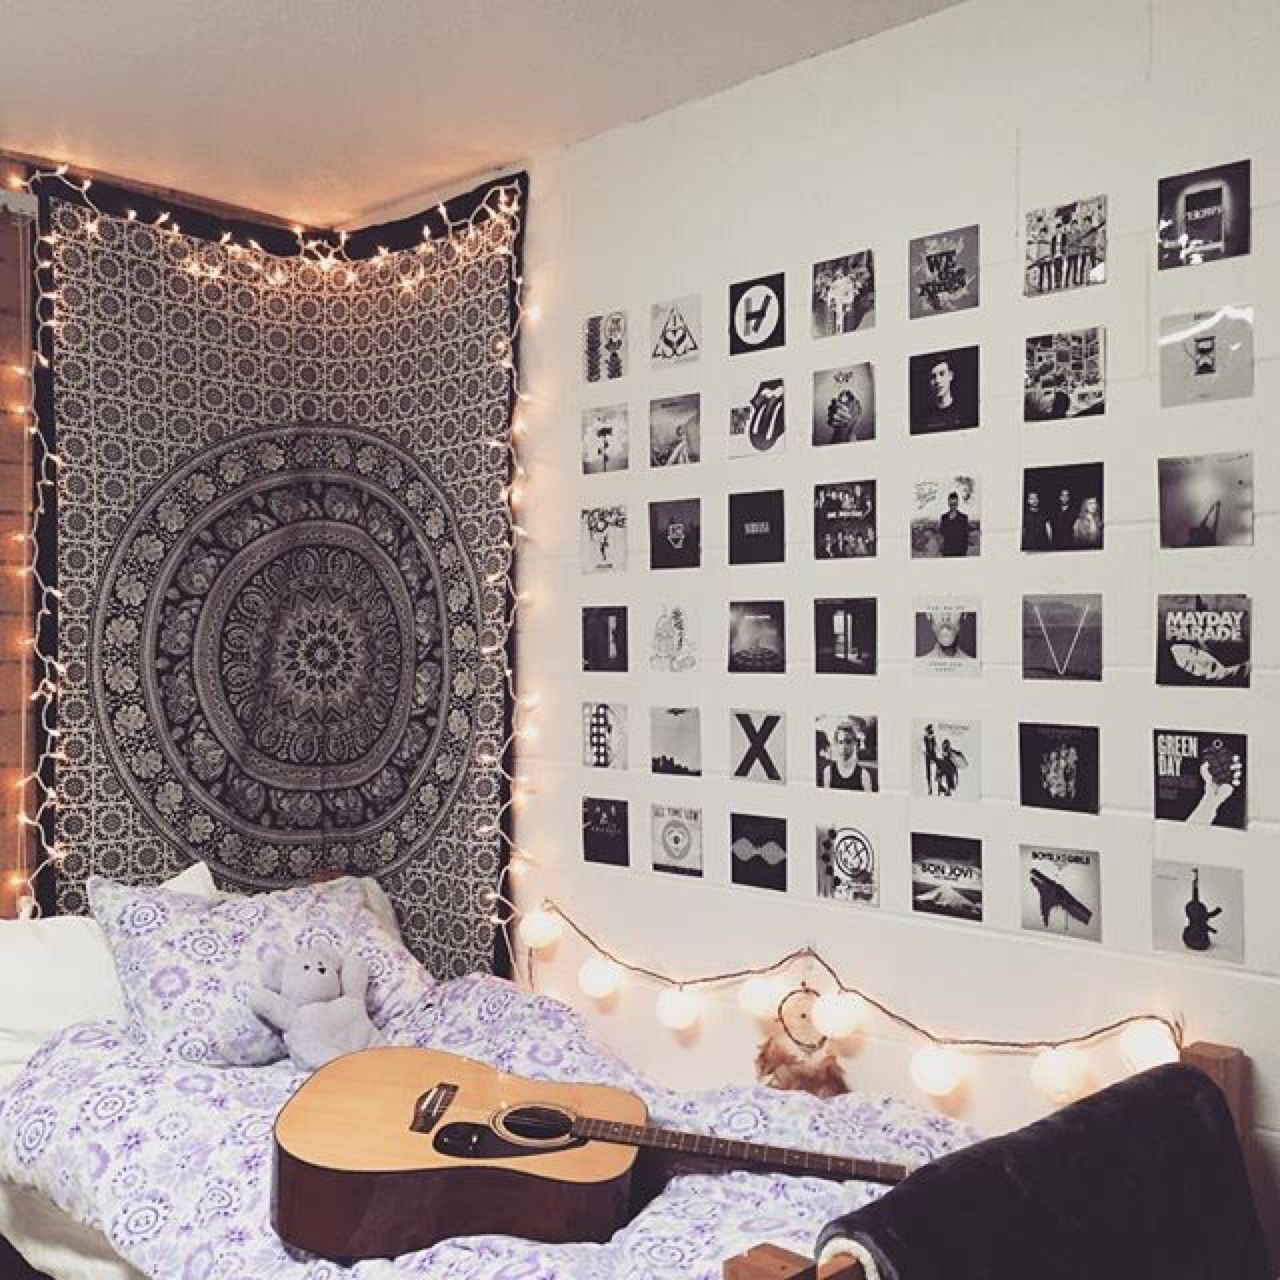 Fairy lights bedroom tumblr - Source Myroomspo Tapestry Bedroom Tumblr Bedroom Decoration Room Decor Diy Room Inspiration Poster Lights Fairy Lights